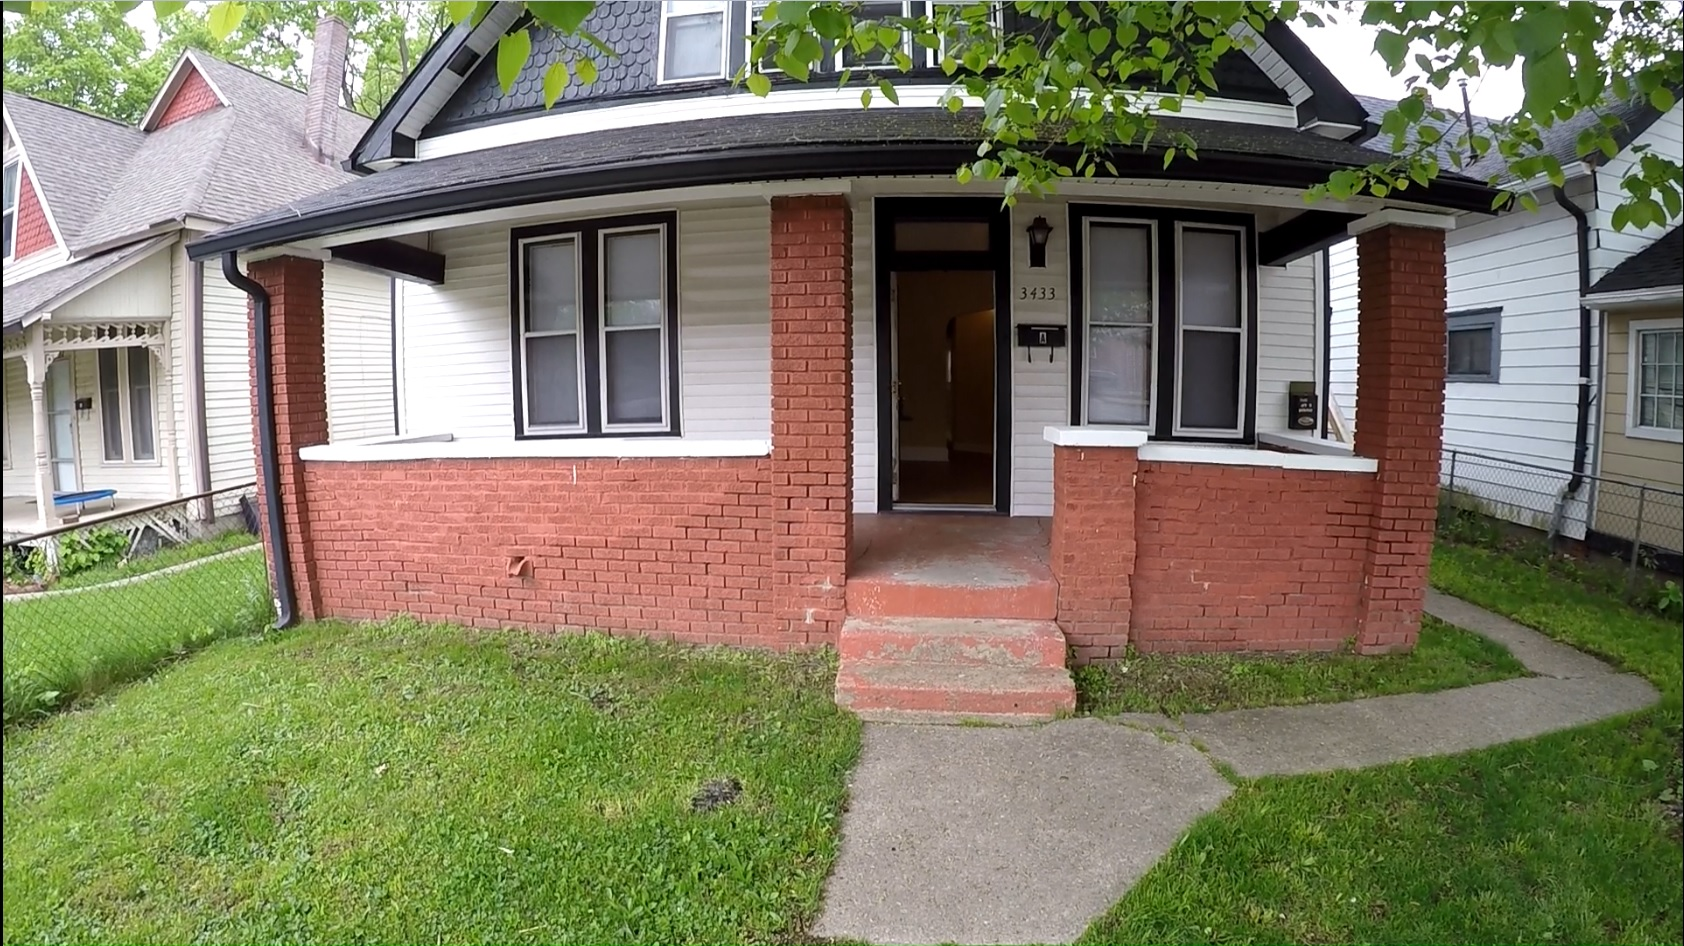 2 Bedroom Houses For Rent In Indianapolis 28 Images 2 Bedroom Houses For Rent Beautiful 2